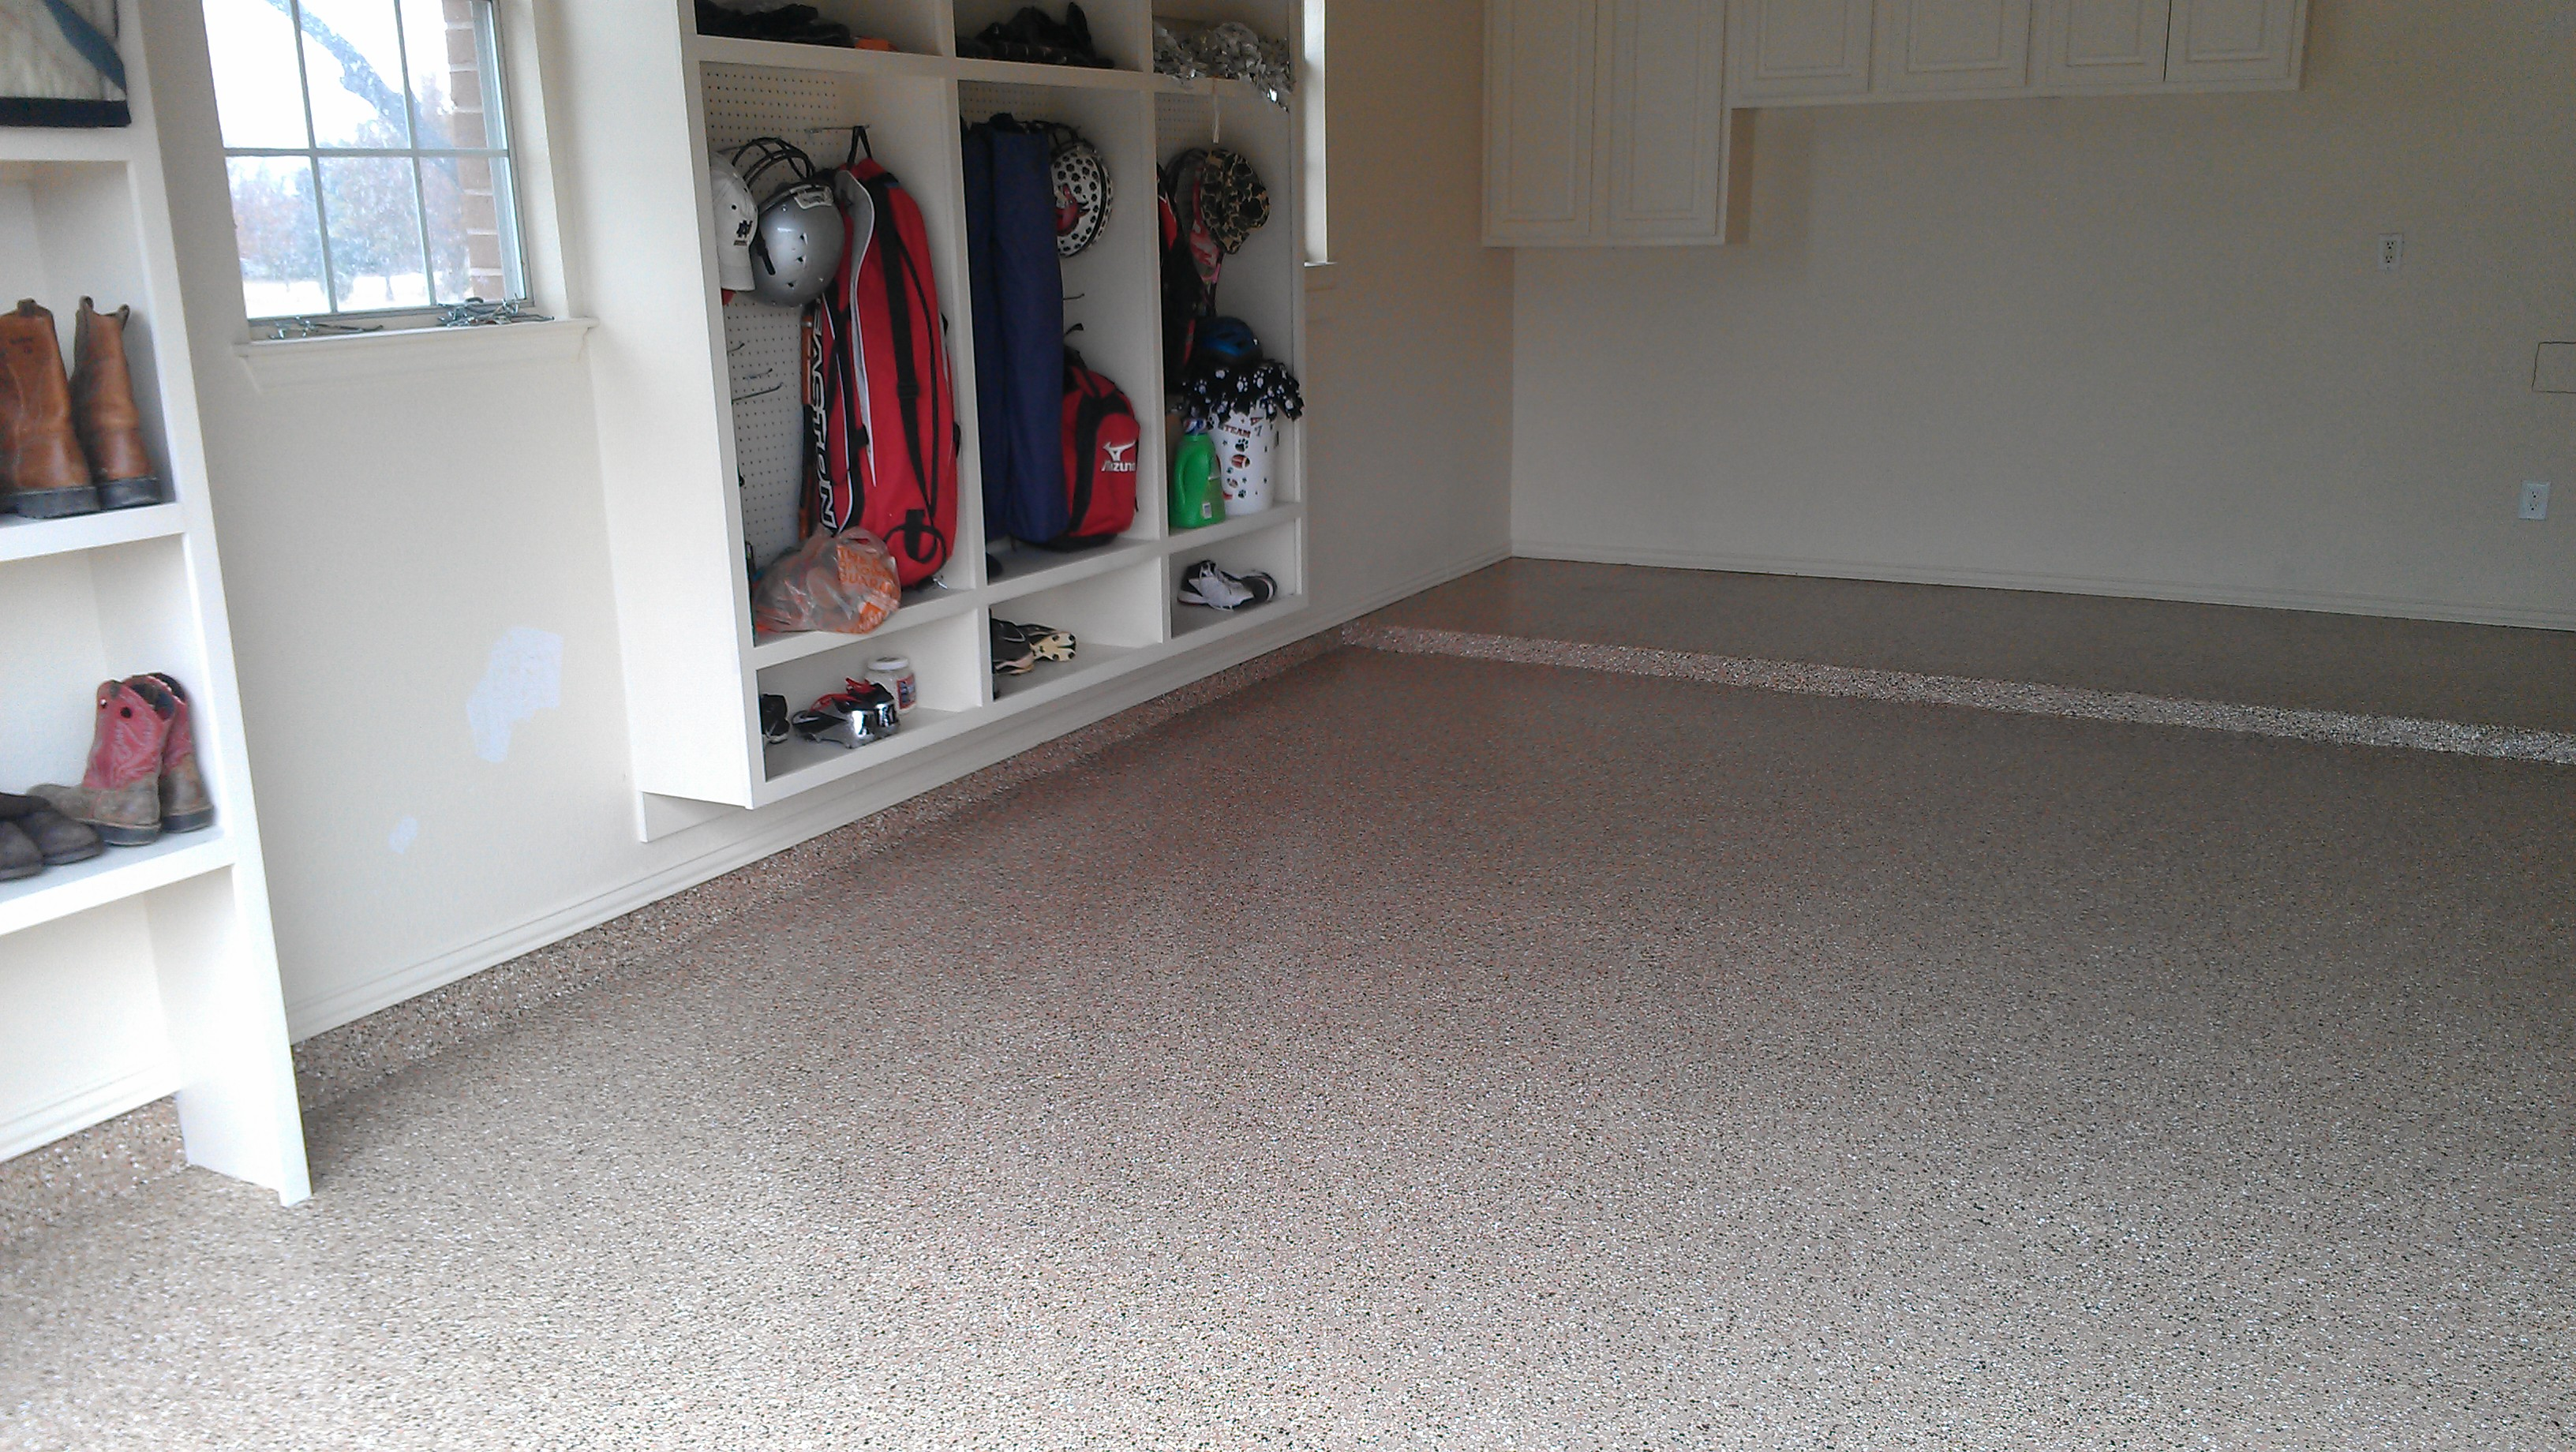 garage ideas full epoxy coin indulging flooring of options size covering grip rools floor rubber coverings